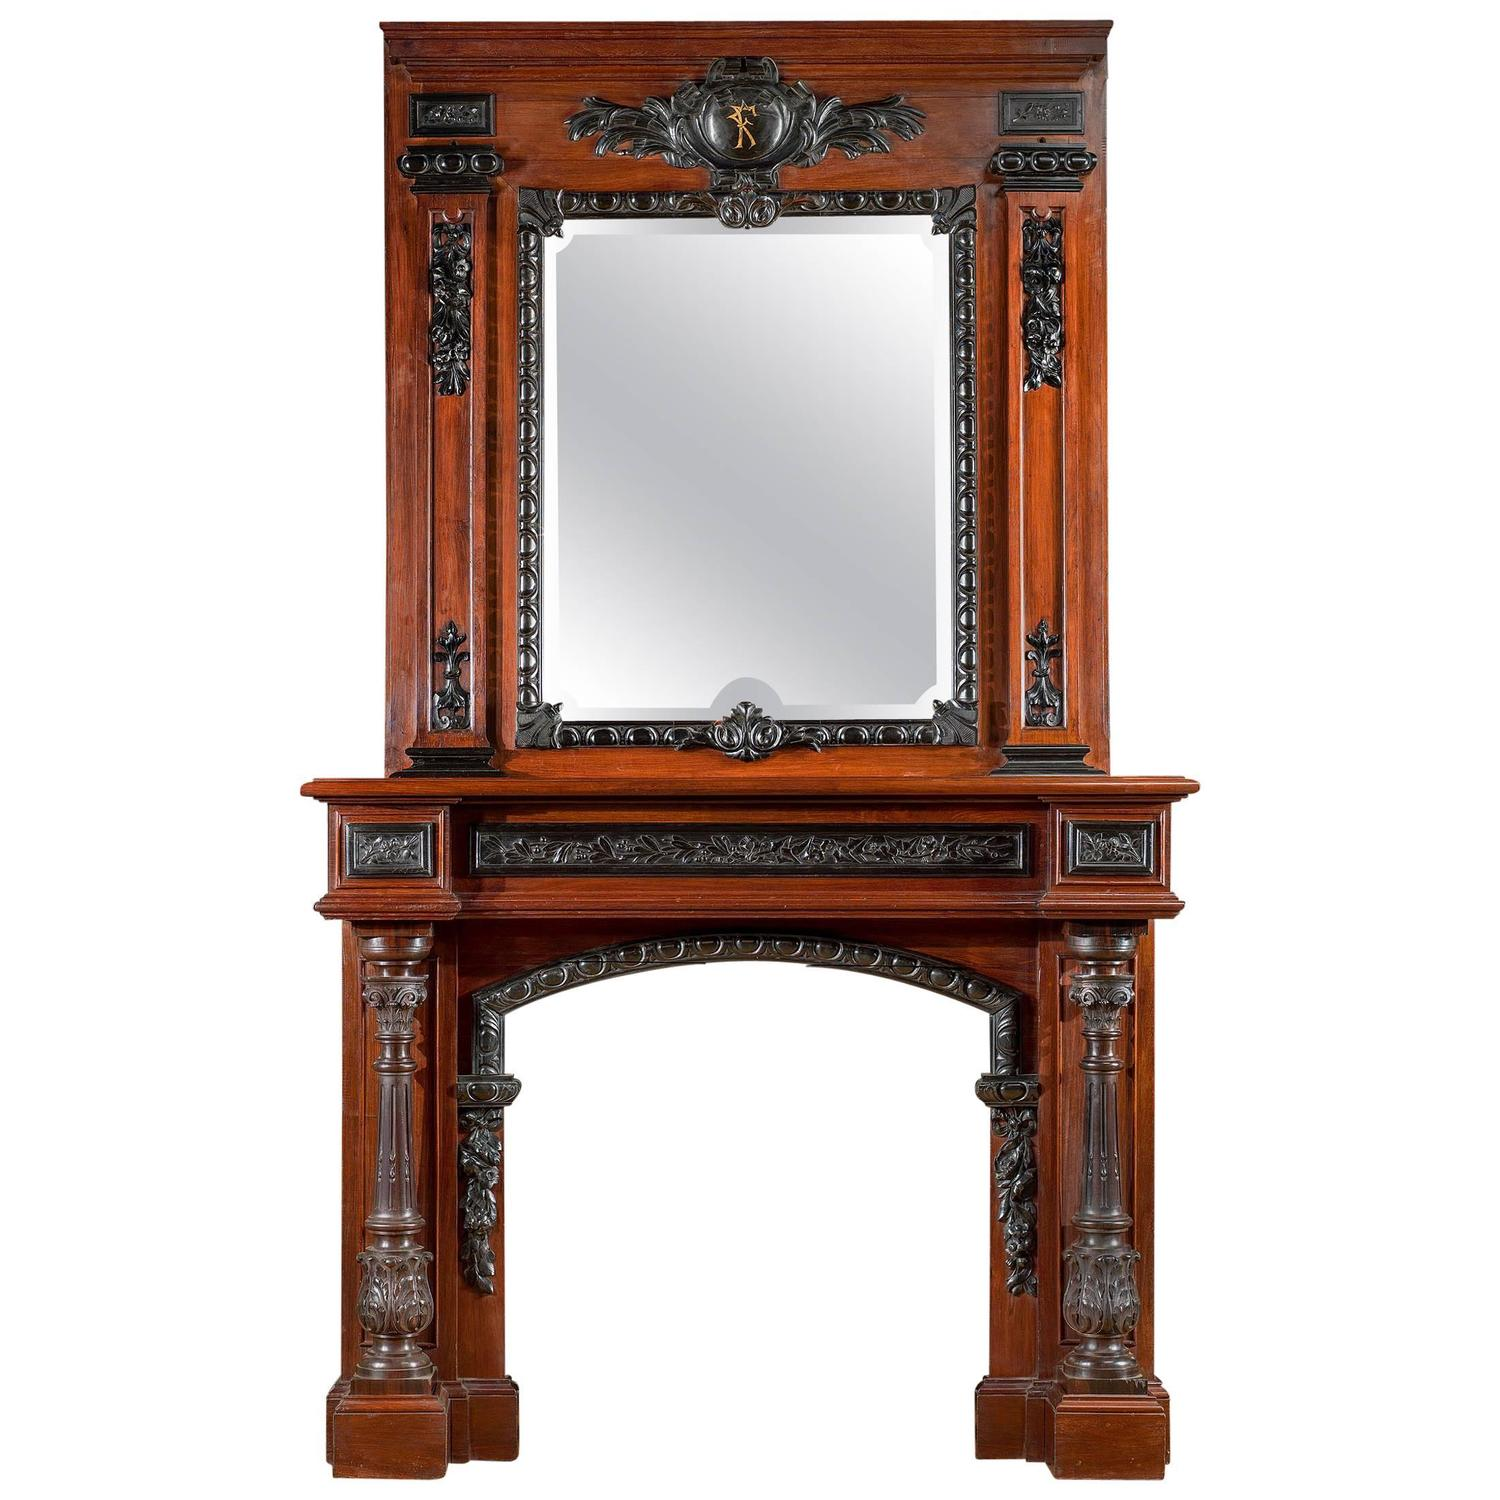 rosewood and ebony antique fireplace mantel in the french baroque